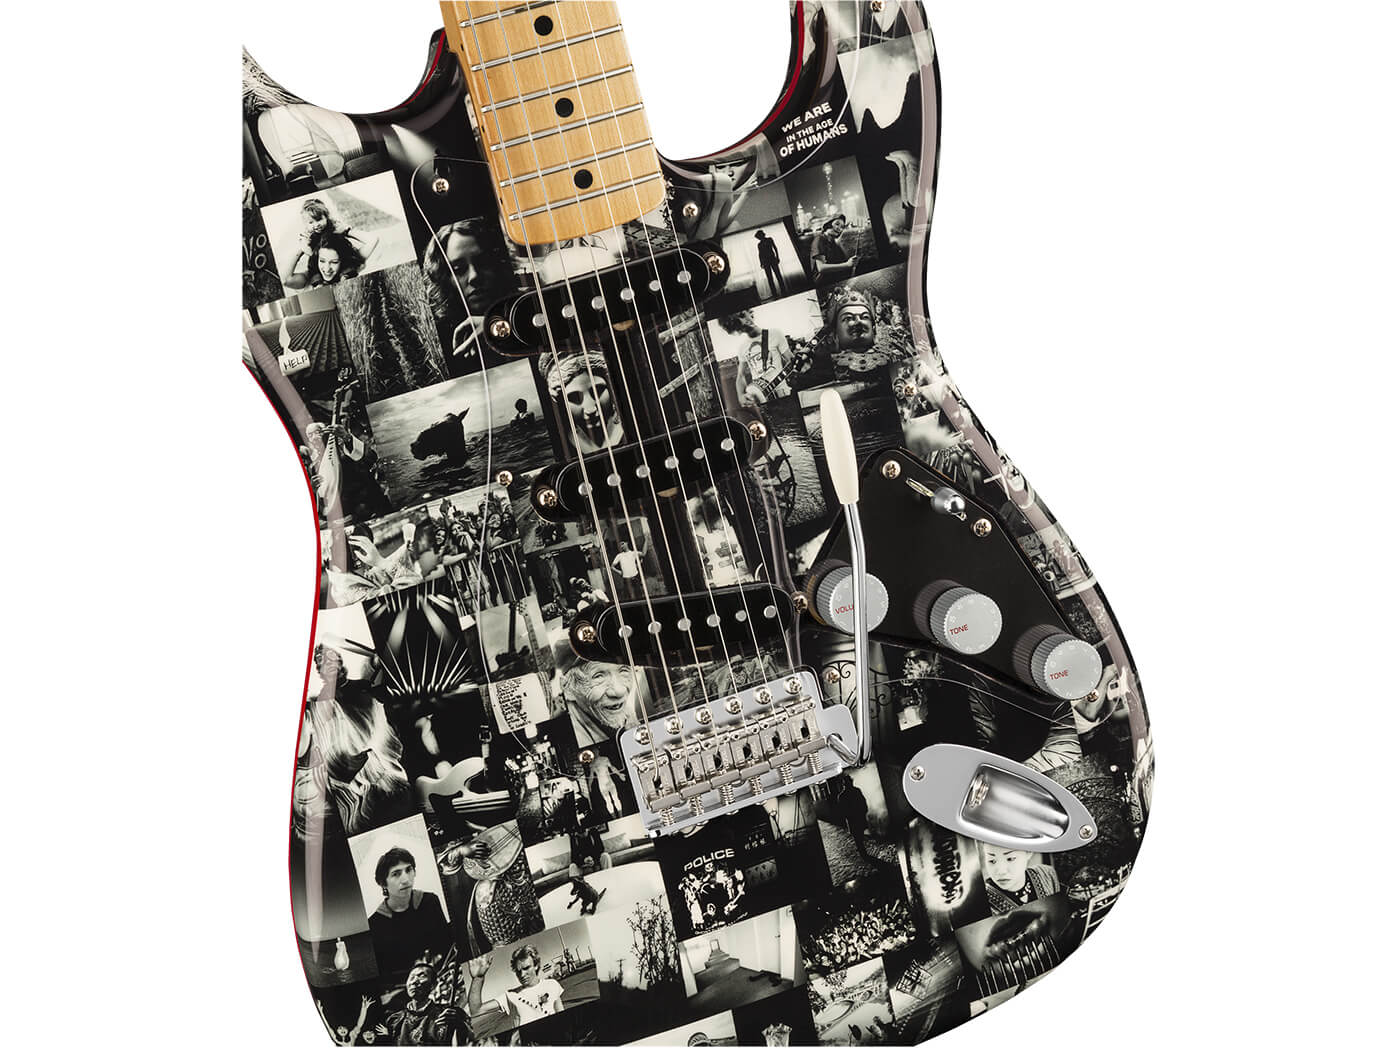 Andy Summers Monochrome Stratocaster